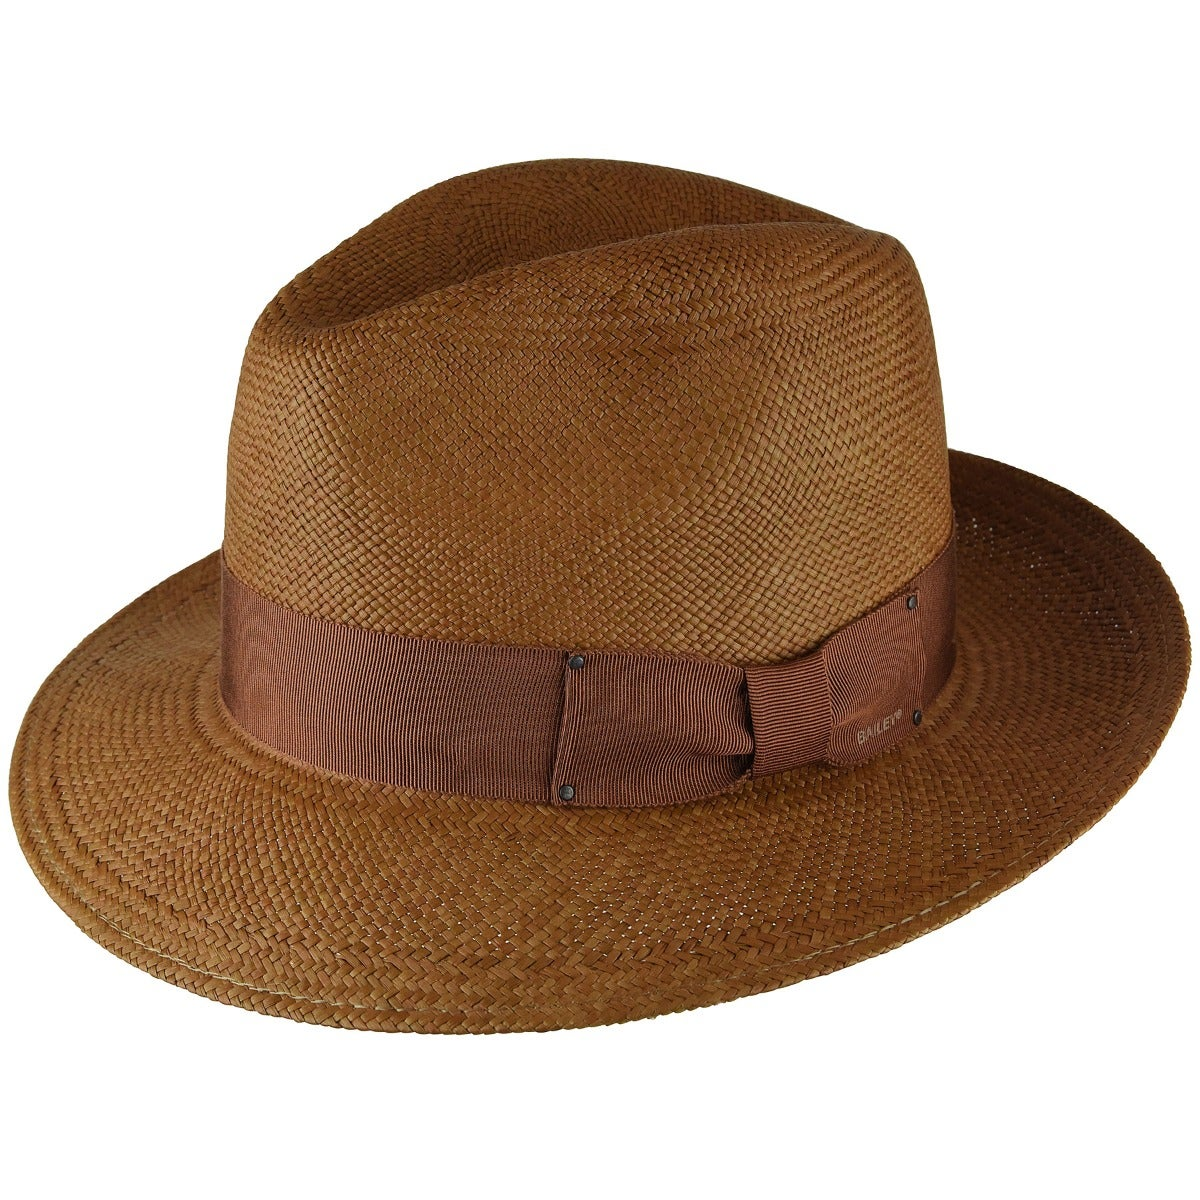 1940s Men's Hat Styles and History Thurman Panama Fedora $155.00 AT vintagedancer.com